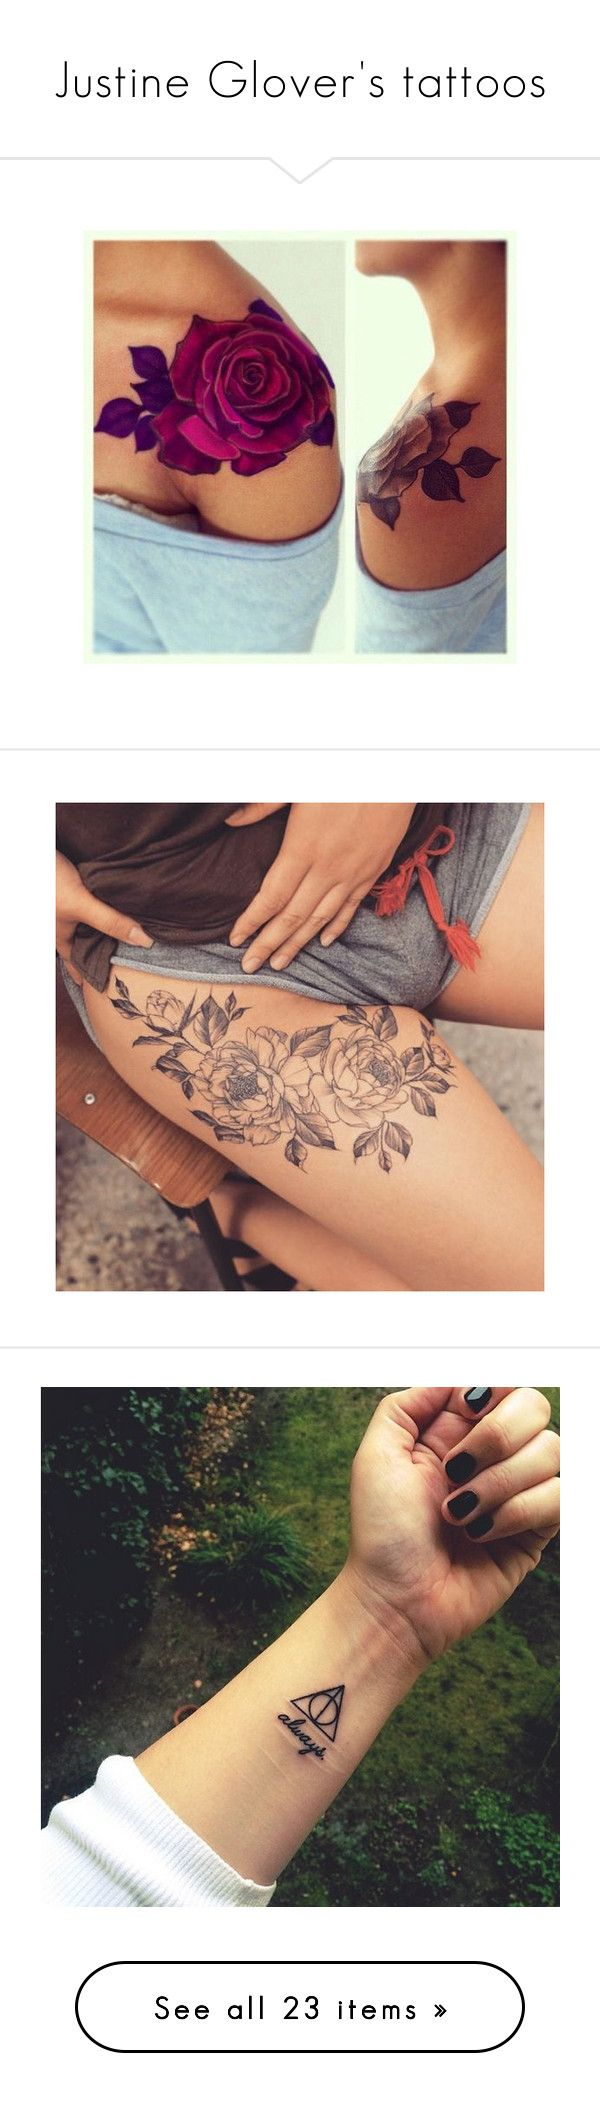 """""""Justine Glover's tattoos"""" by j-j-fandoms ❤ liked on Polyvore featuring accessories, body art, tattoo, tattoos, harry potter, photos, pictures, backgrounds, tatoo and tatoos"""